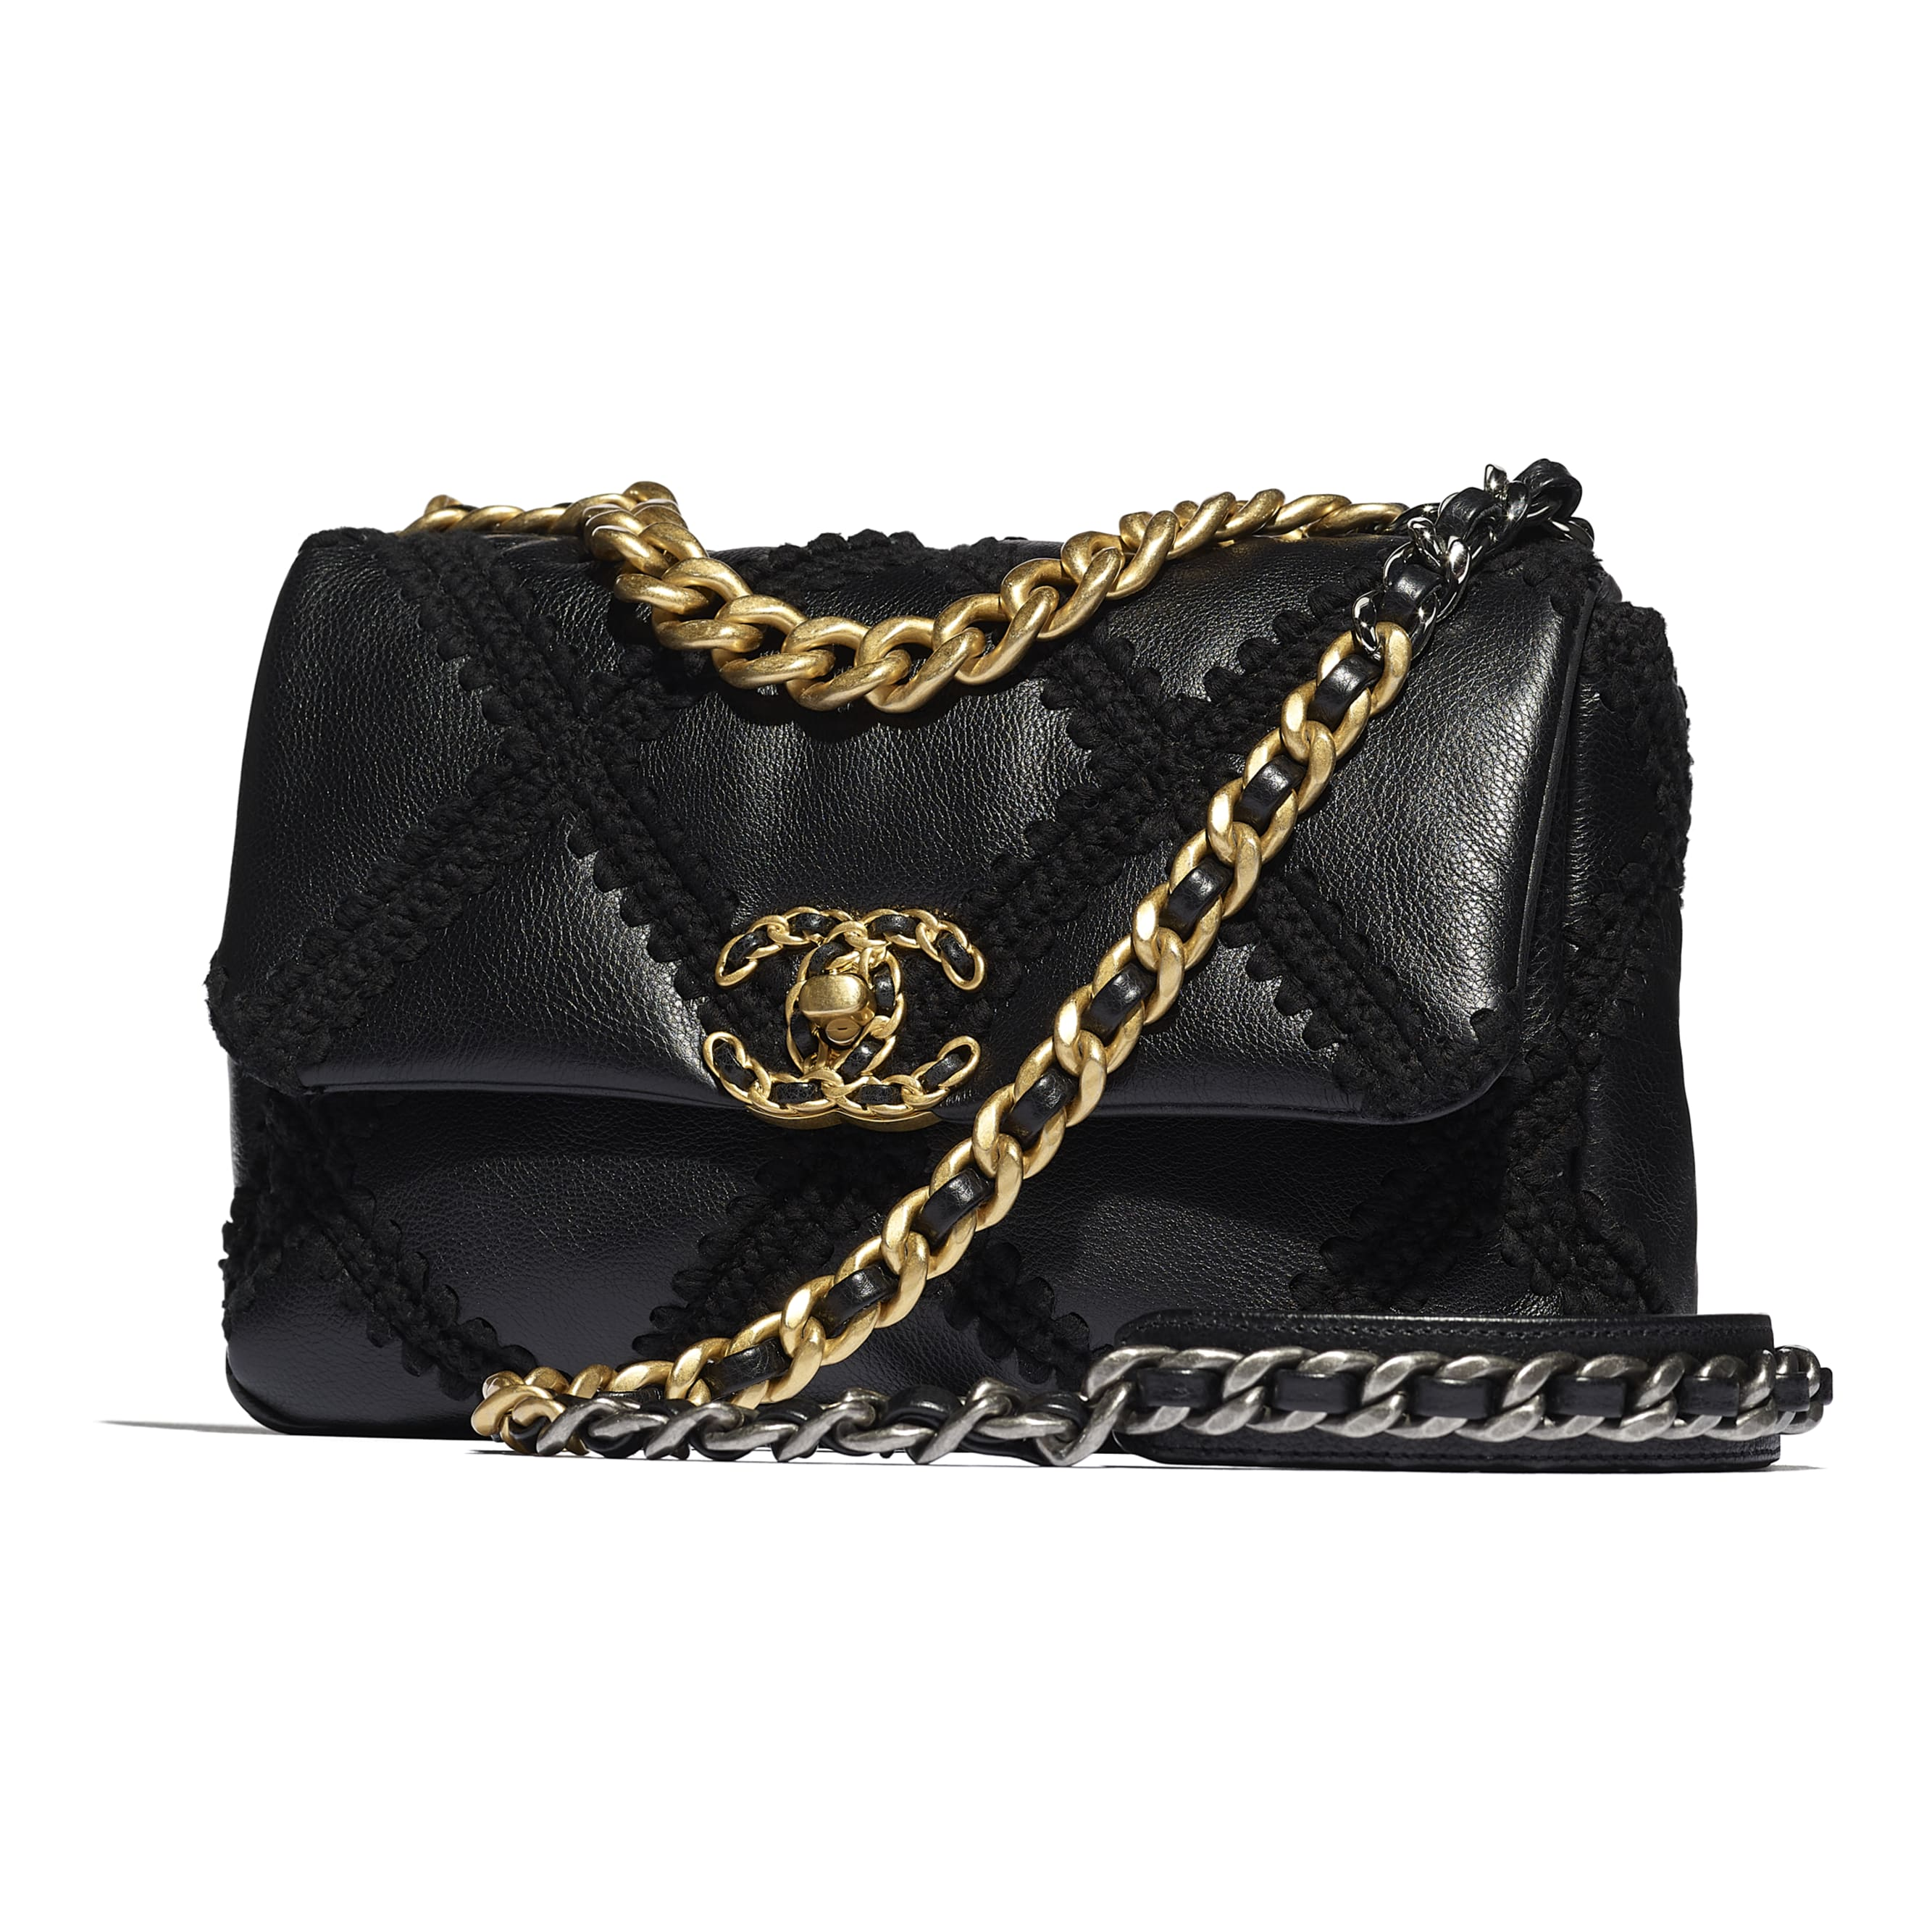 CHANEL 19 Flap Bag - Black - Calfskin, Crochet, Gold-Tone, Silver-Tone & Ruthenium-Finish Metal - CHANEL - Extra view - see standard sized version